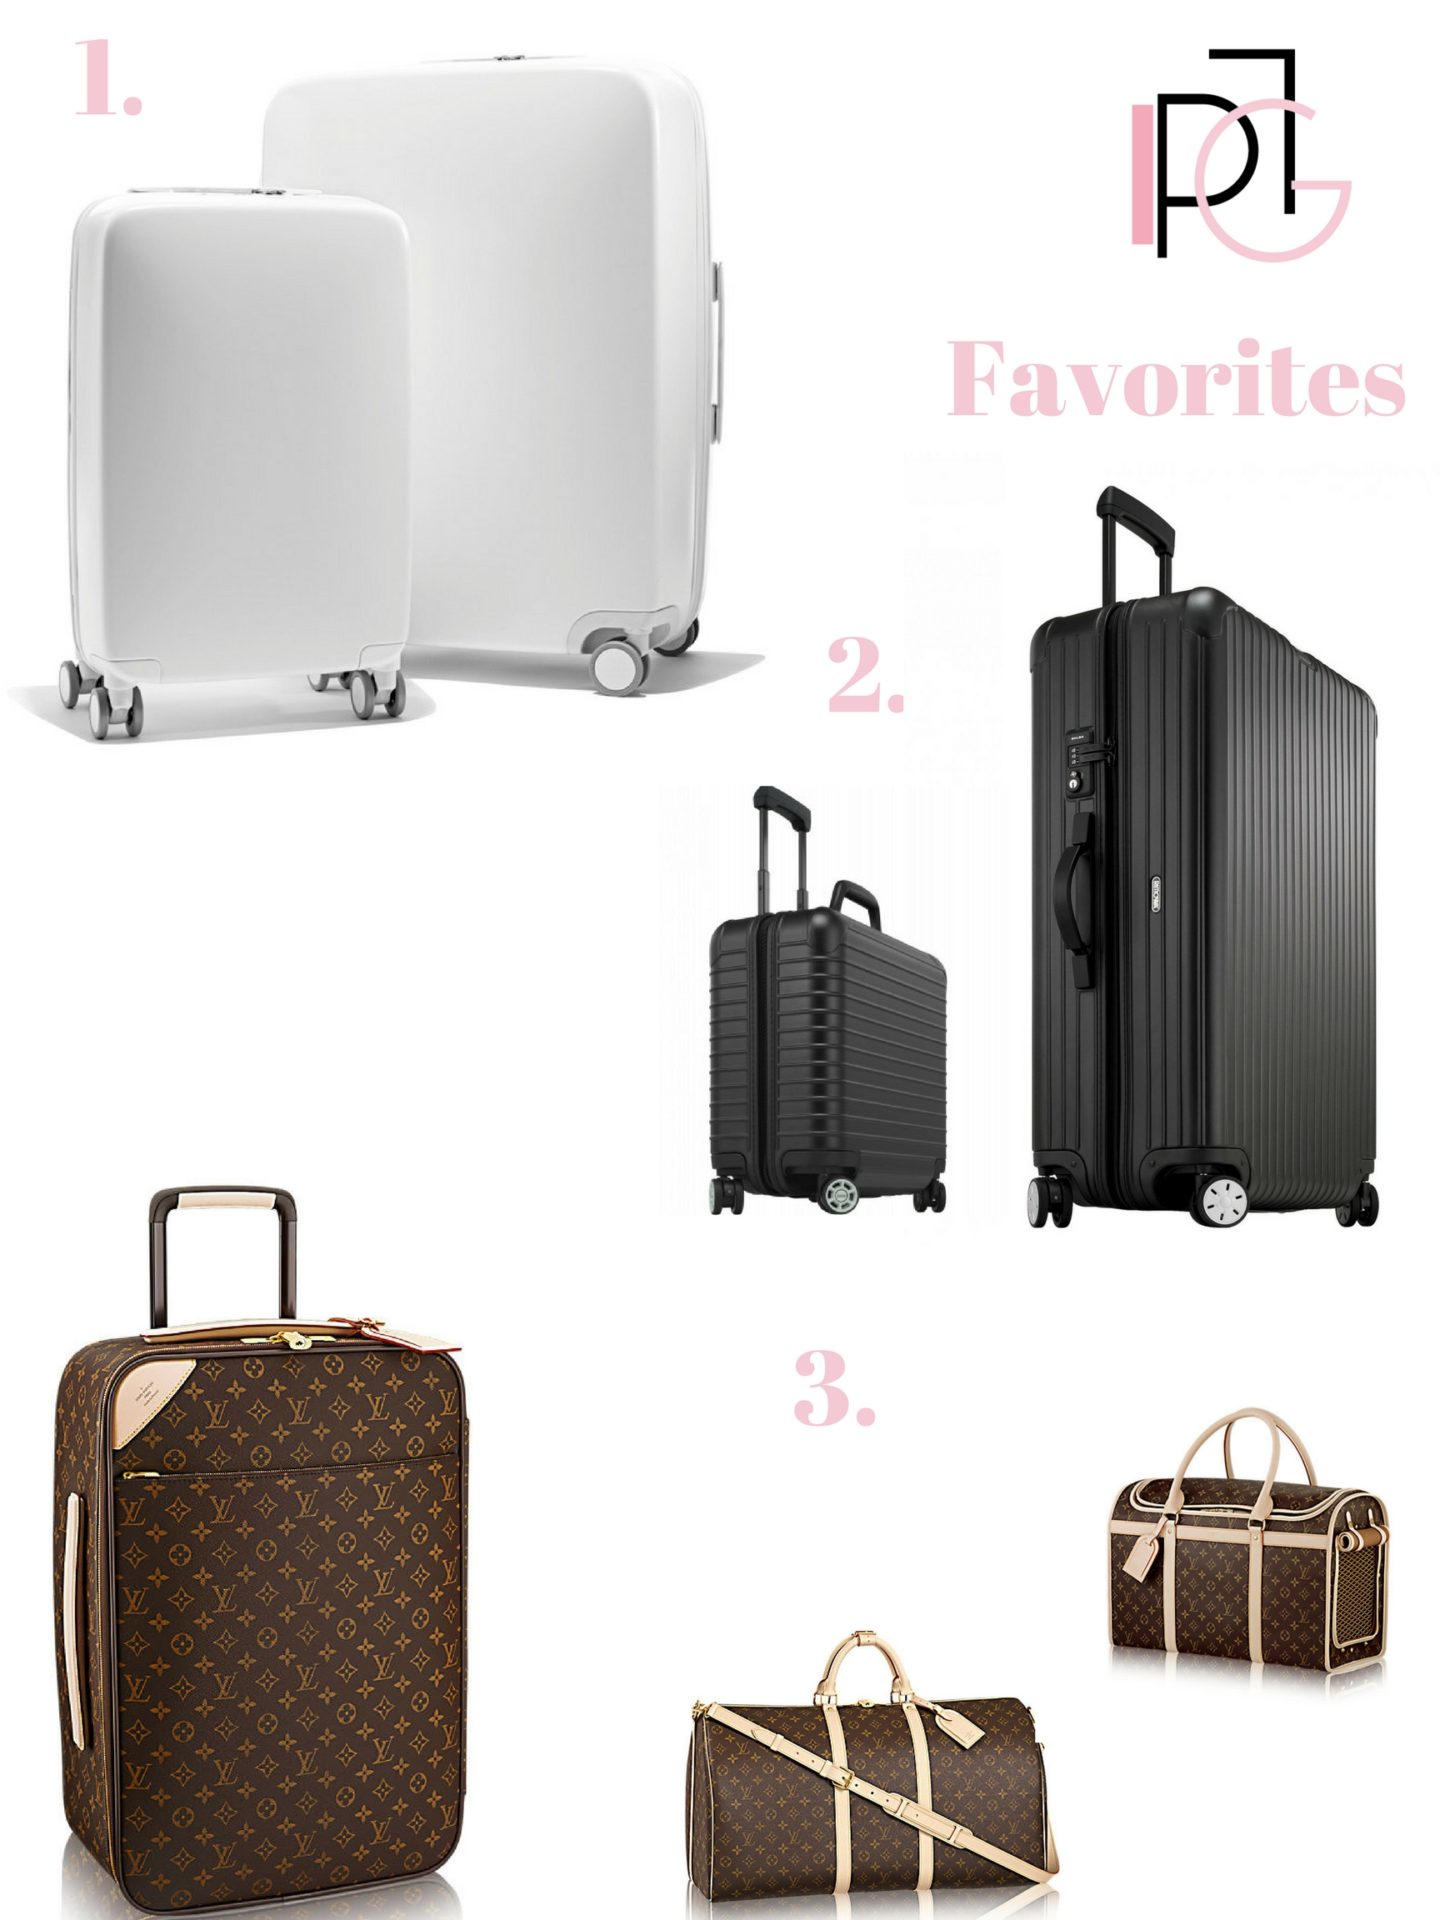 Carry-ons worth Carrying on